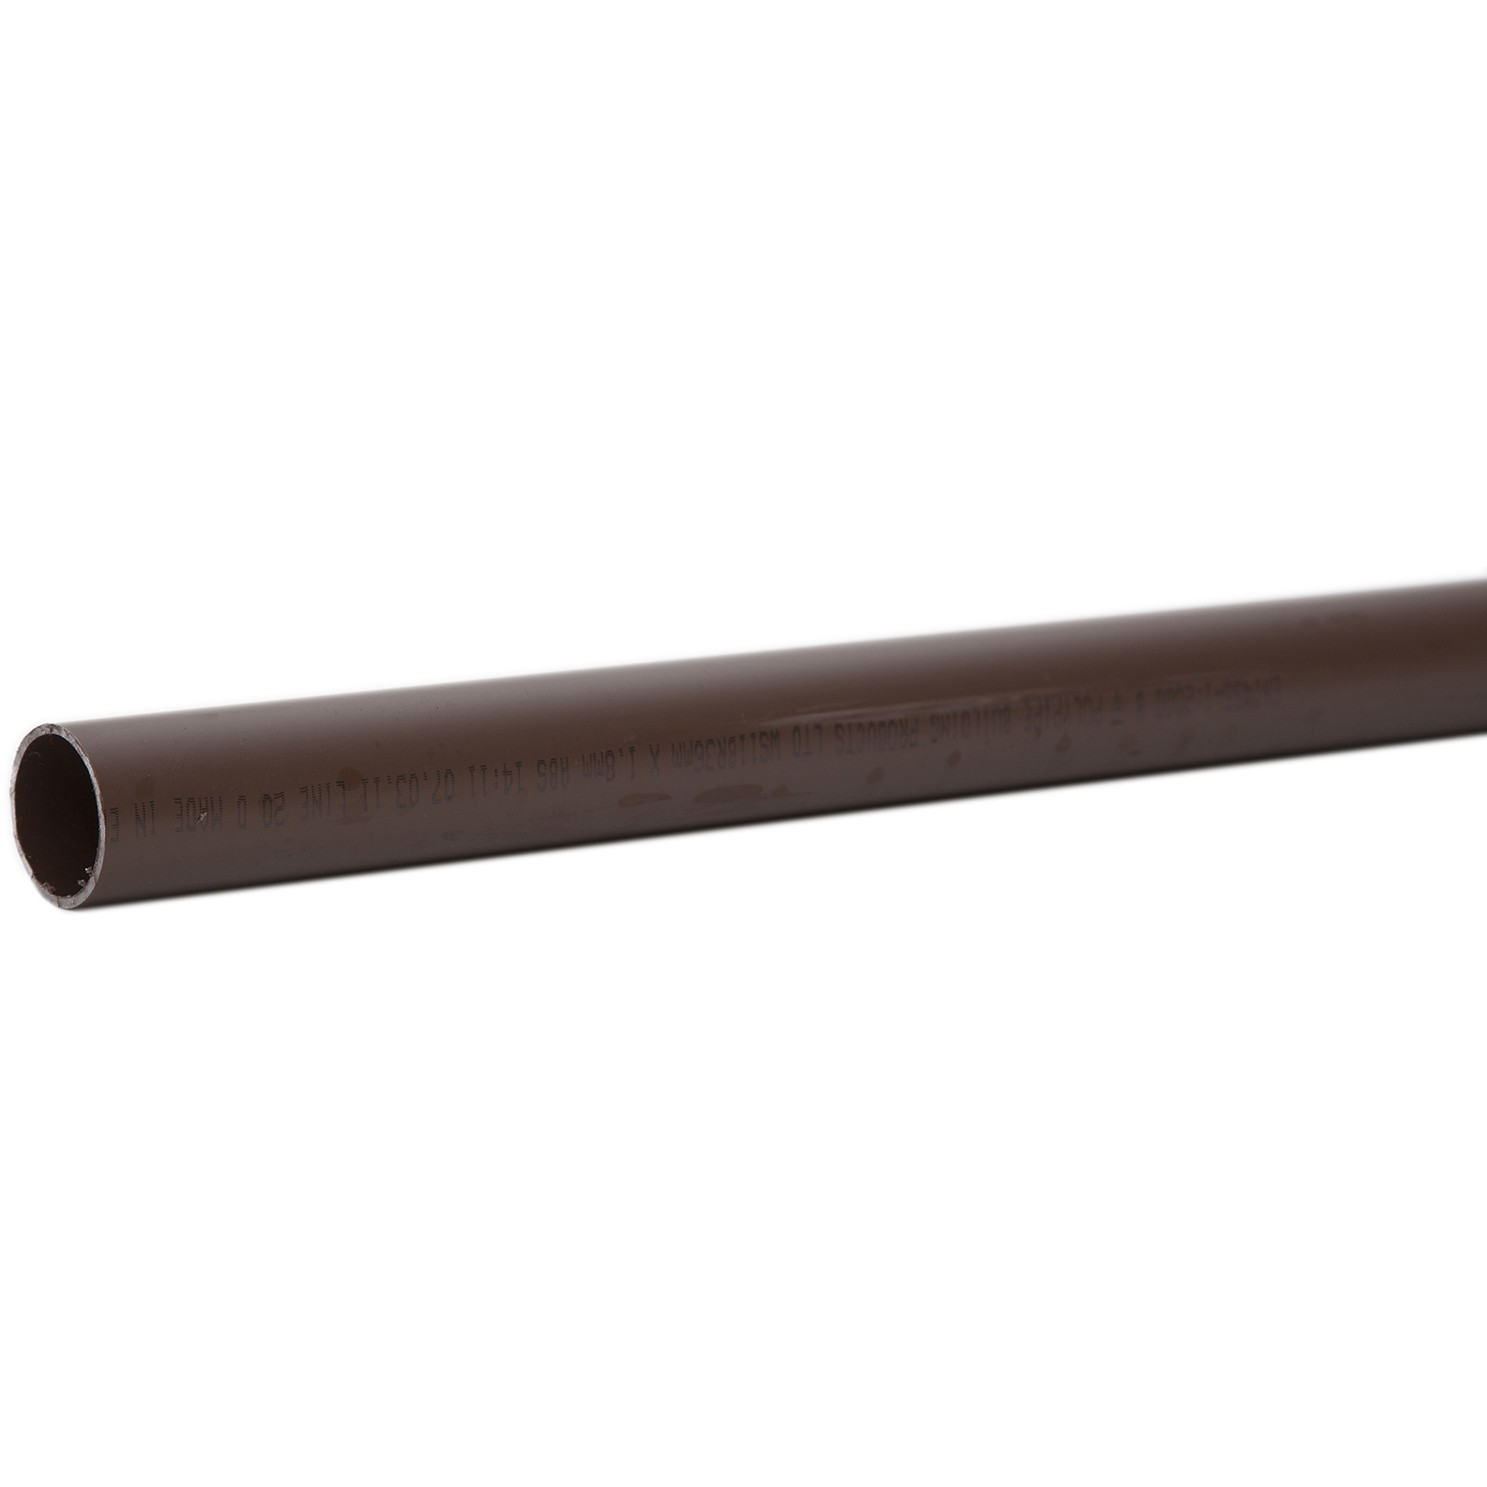 Polypipe 32mm Solvent Weld Waste Pipe - Brown, 3 metre